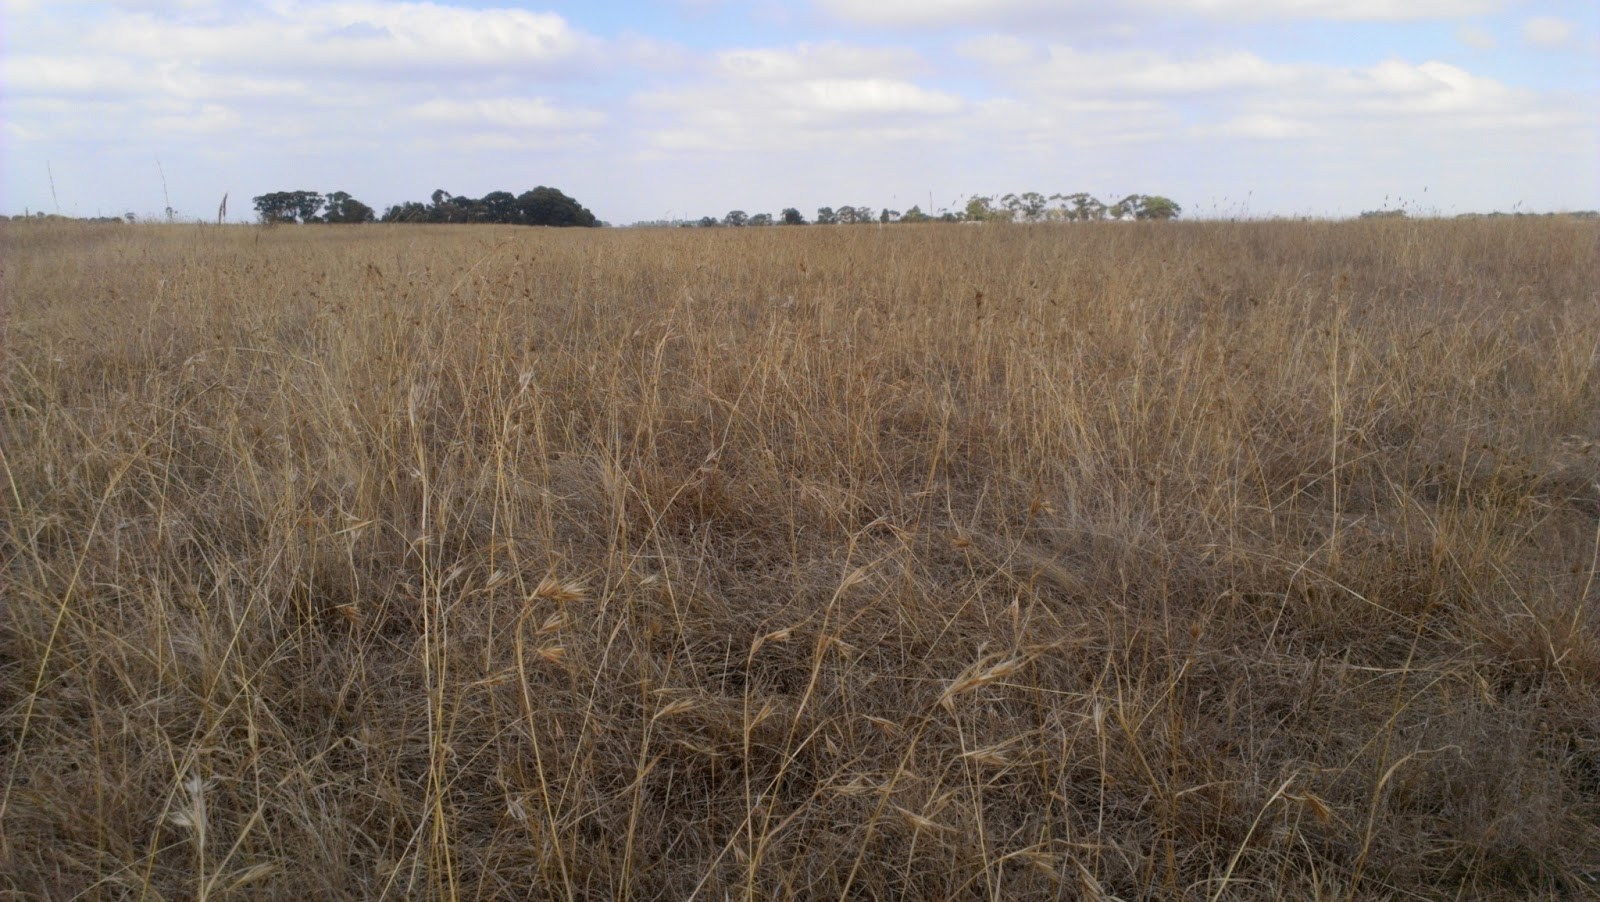 A dry grassland. Photo: Meteorological Ecological Issues